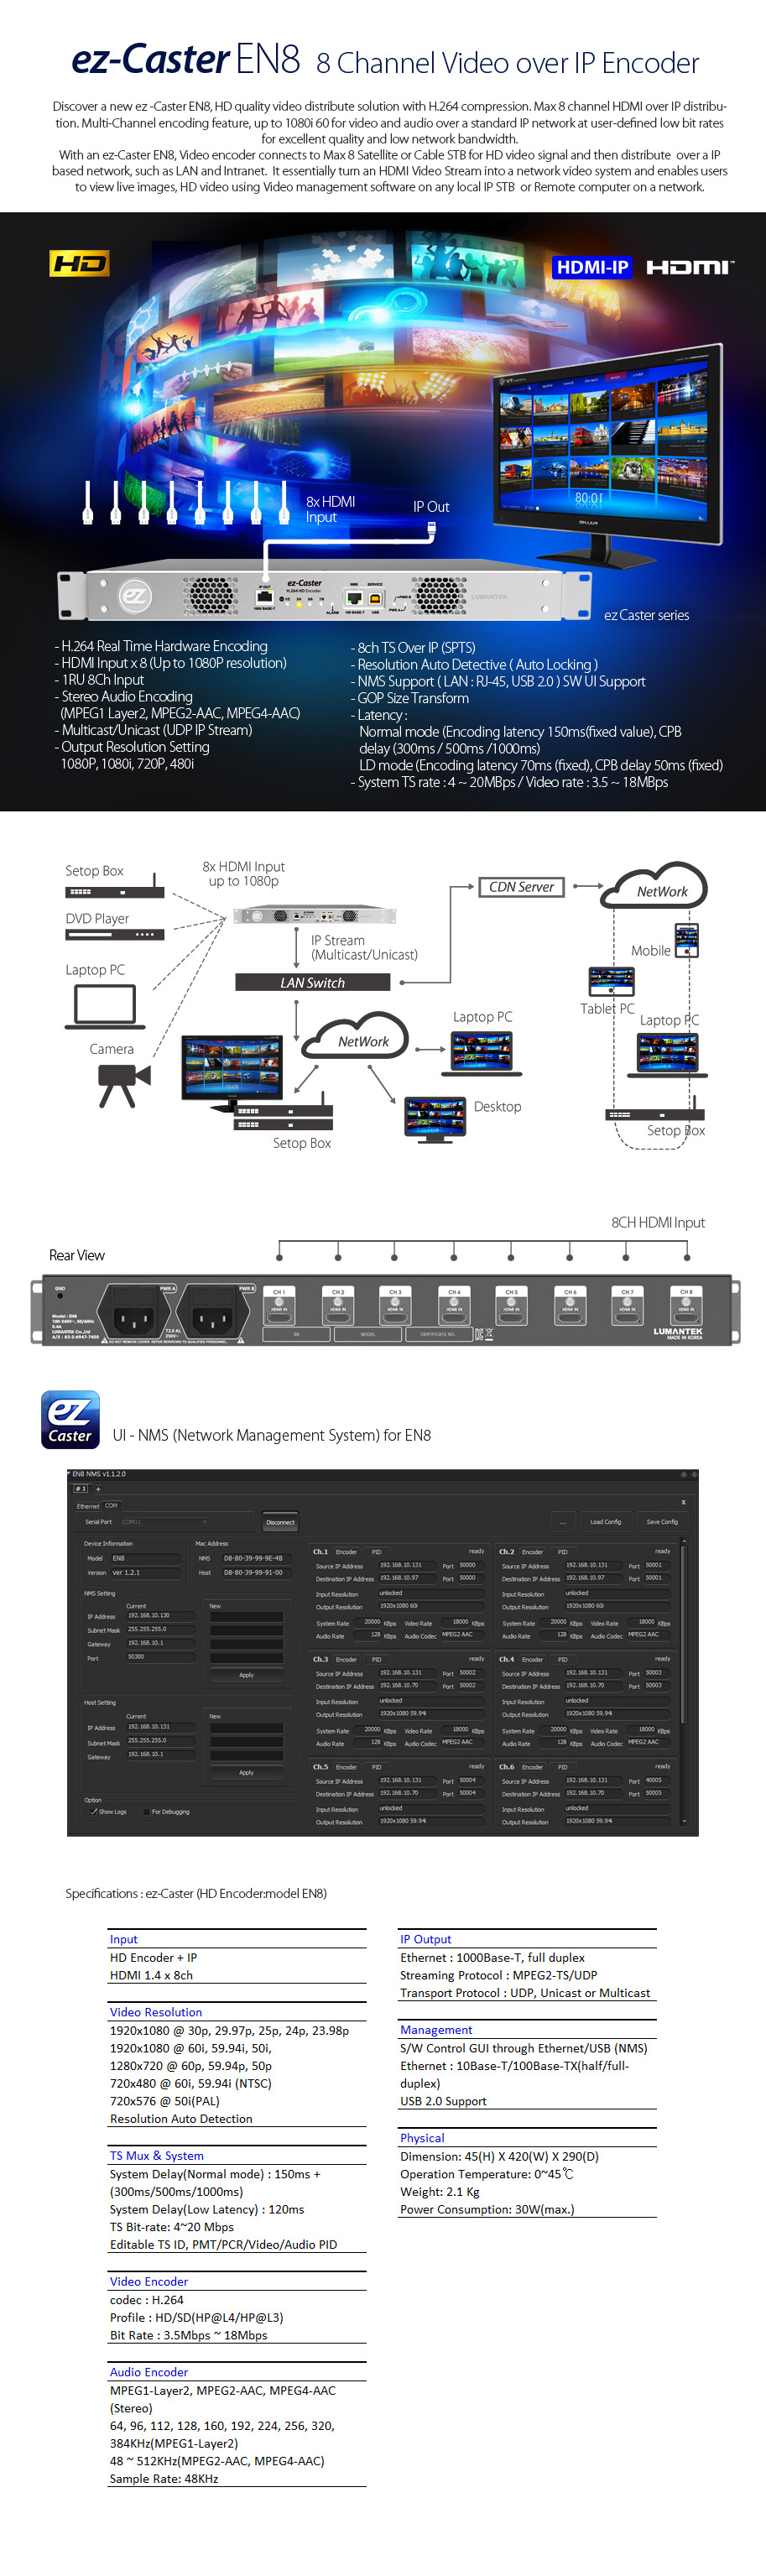 ez-Caster EN8 8CH Video over IP Encoder 03